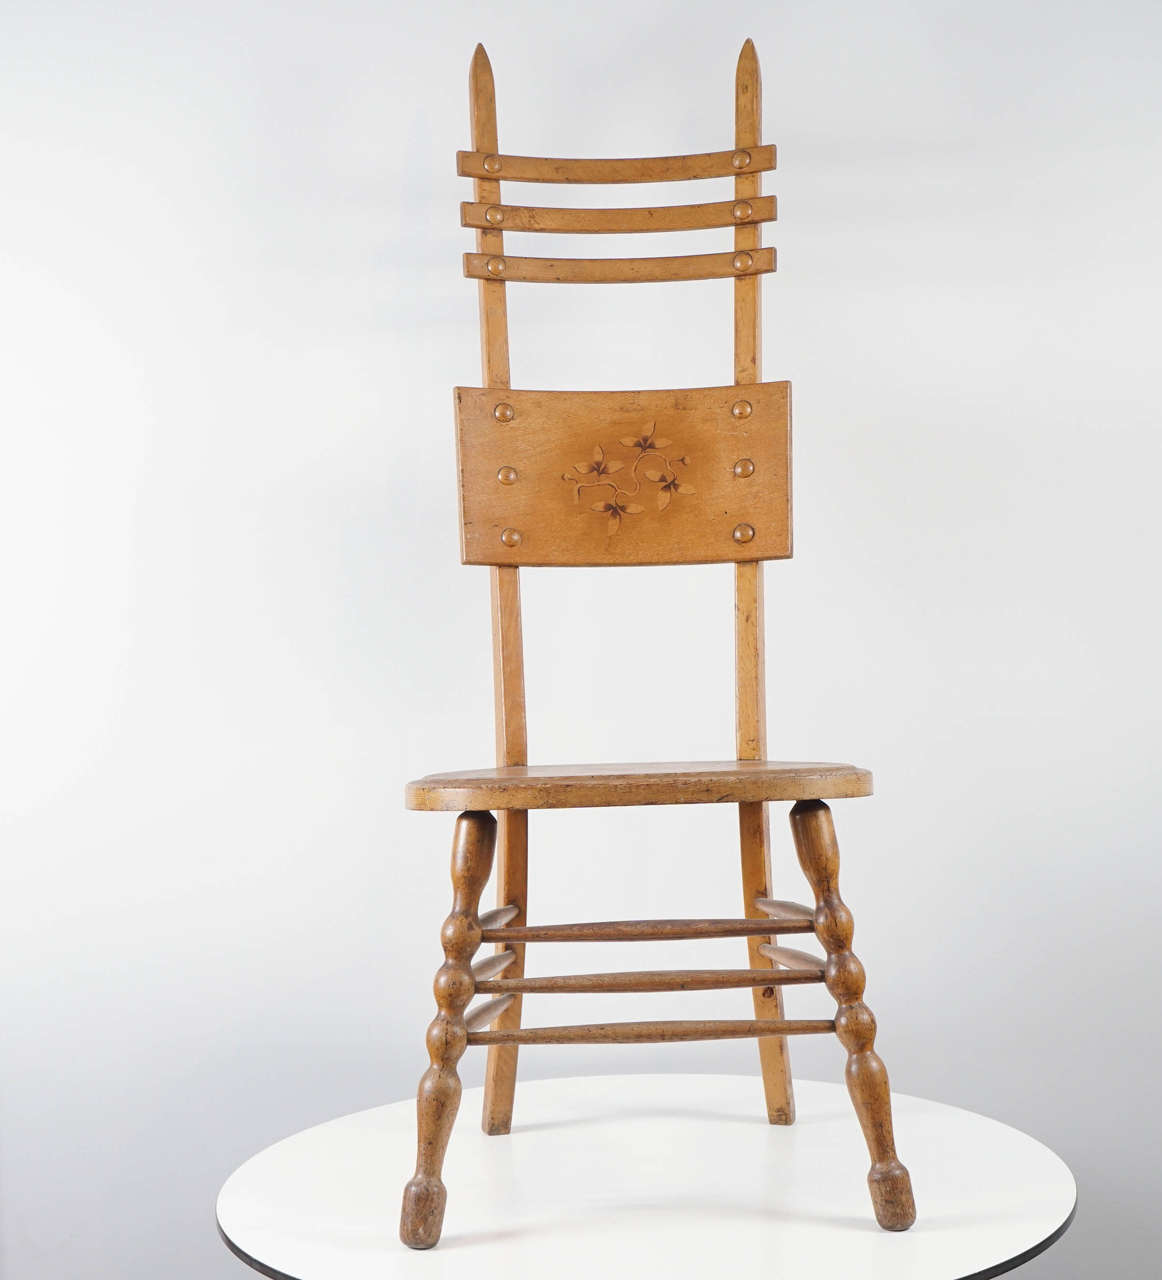 This wonderful chair appears to show some